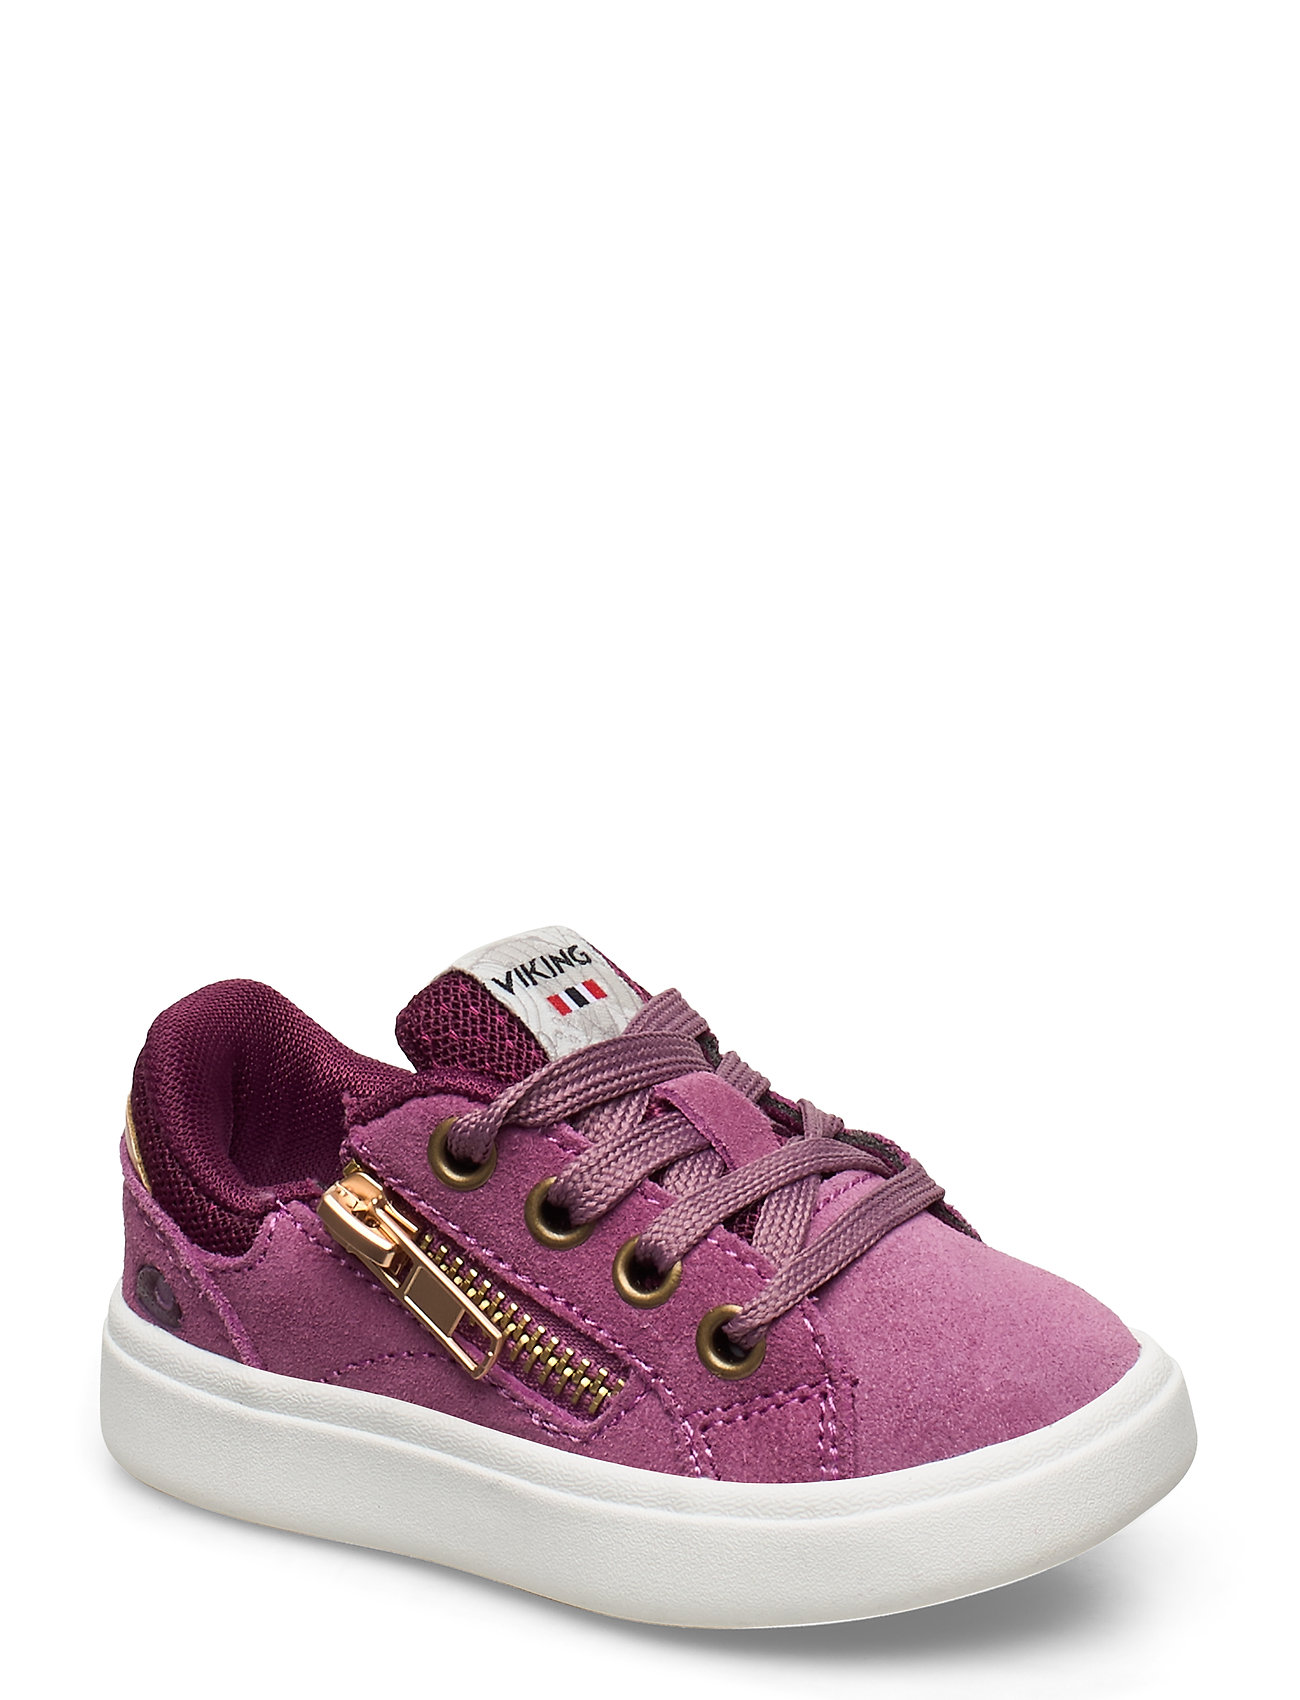 Image of Eve Low Zip Low-top Sneakers Lilla Viking (3379843233)